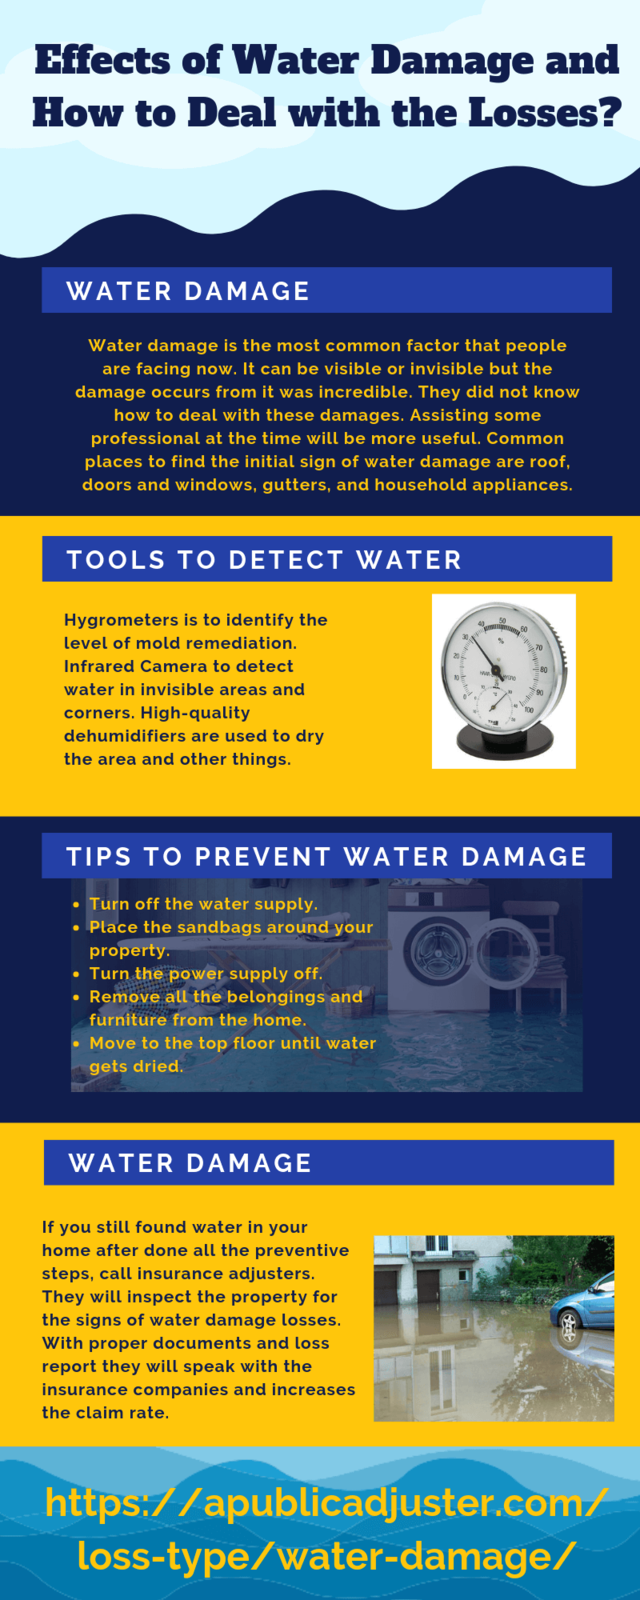 Effects of water damage and how to deal with the losses (1)